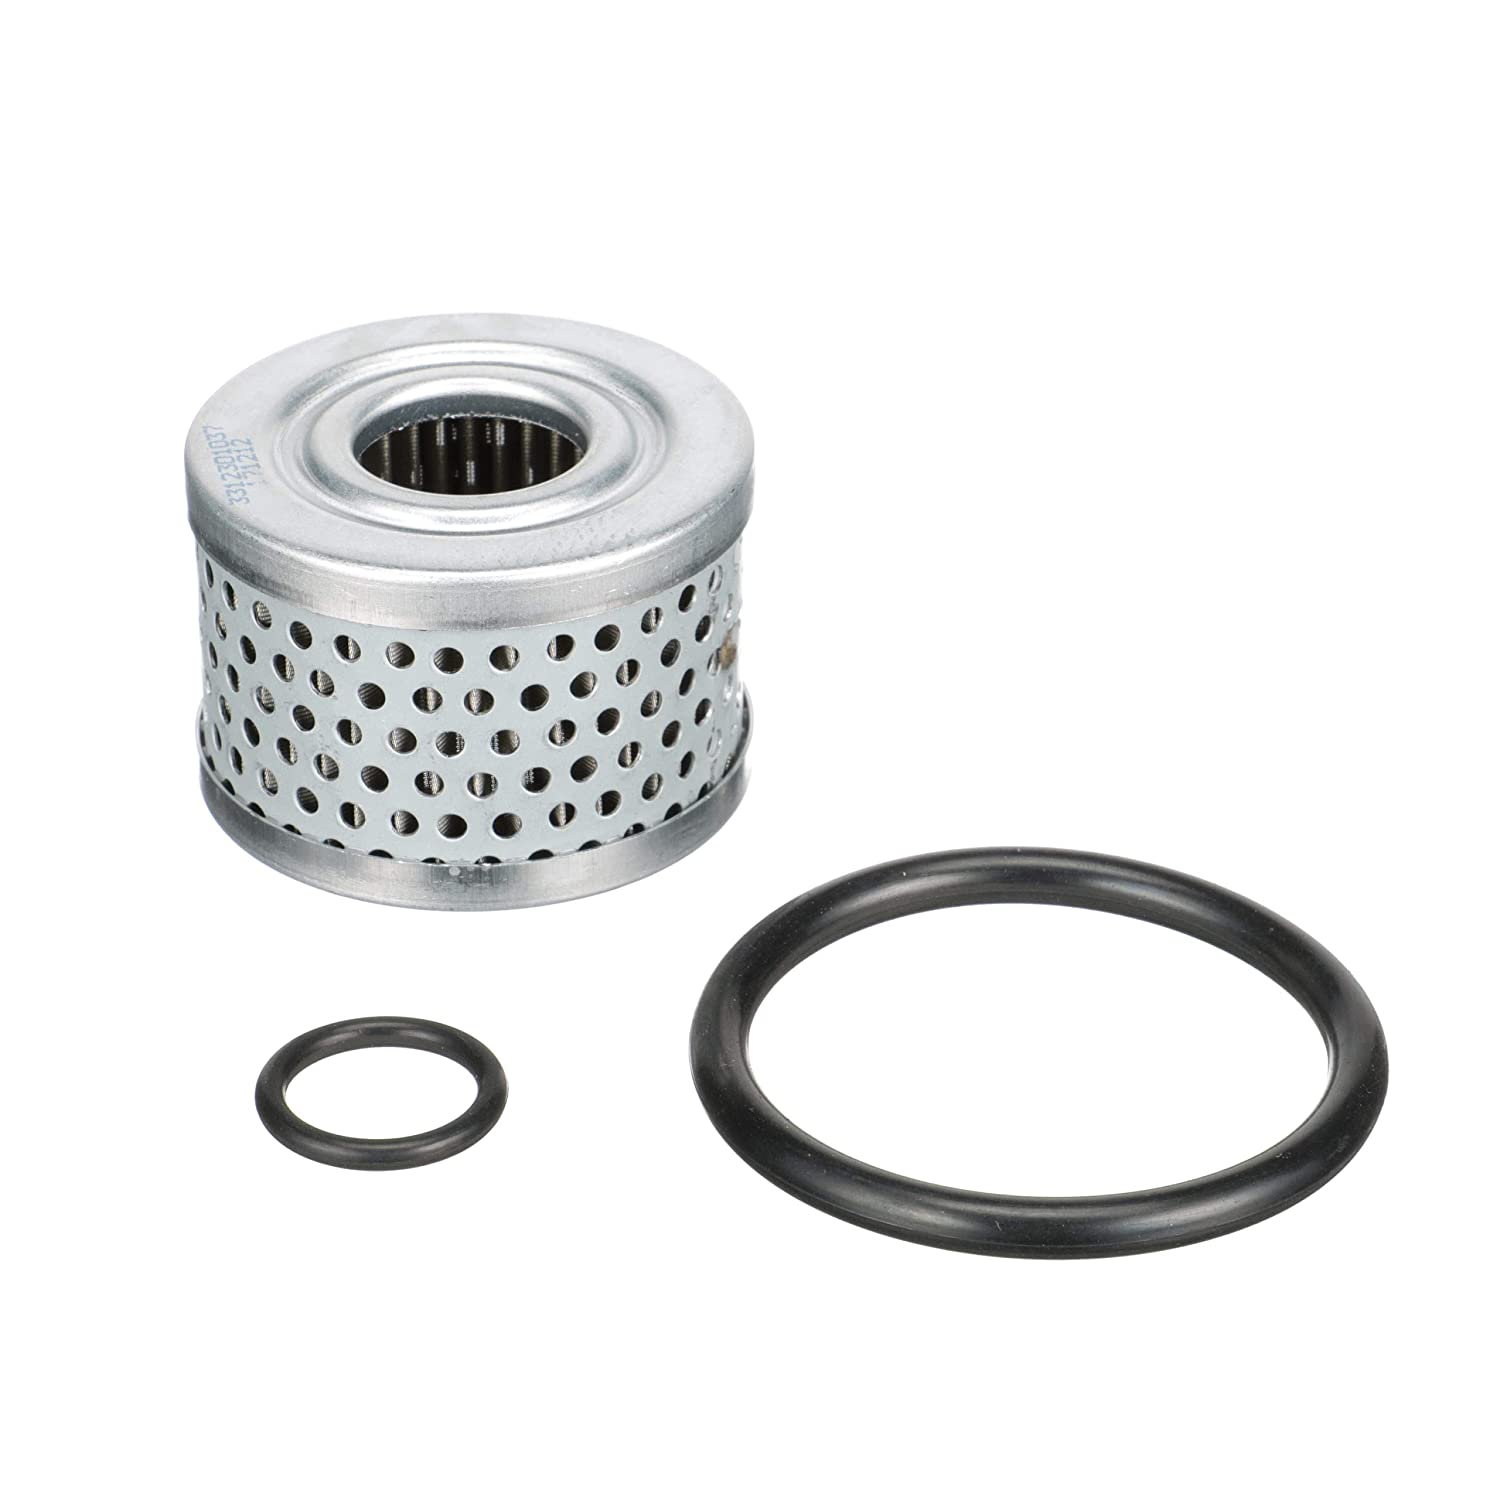 for Hurth 630 /& 800 Down-Angle and V-Drive Transmissions Quicksilver Replacement MerCruiser Transmission Fluid Filter Kit 879194241